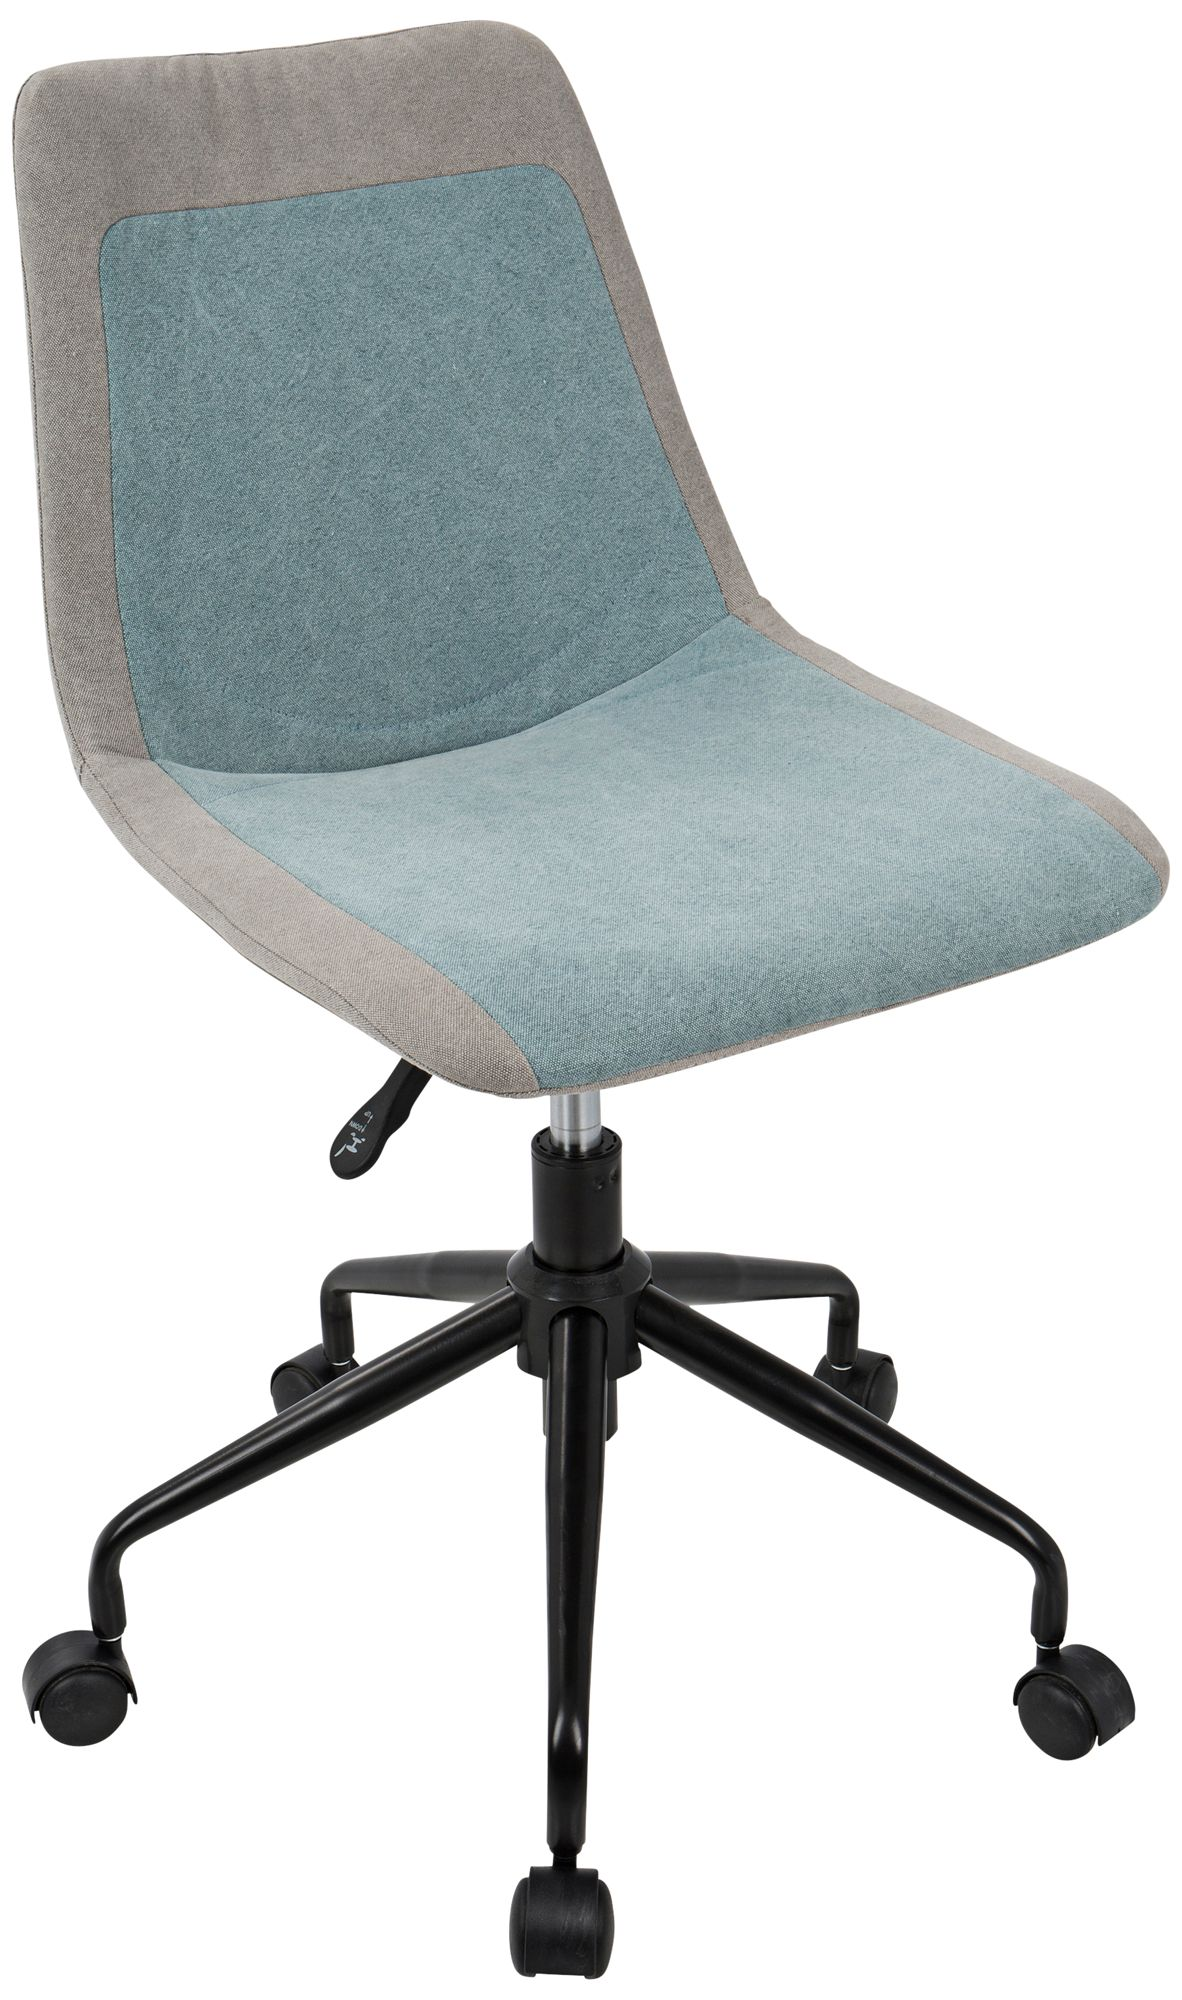 turquoise office chair armrest chairs new home desk lamps plus orzo gray and blue denim adjustable task